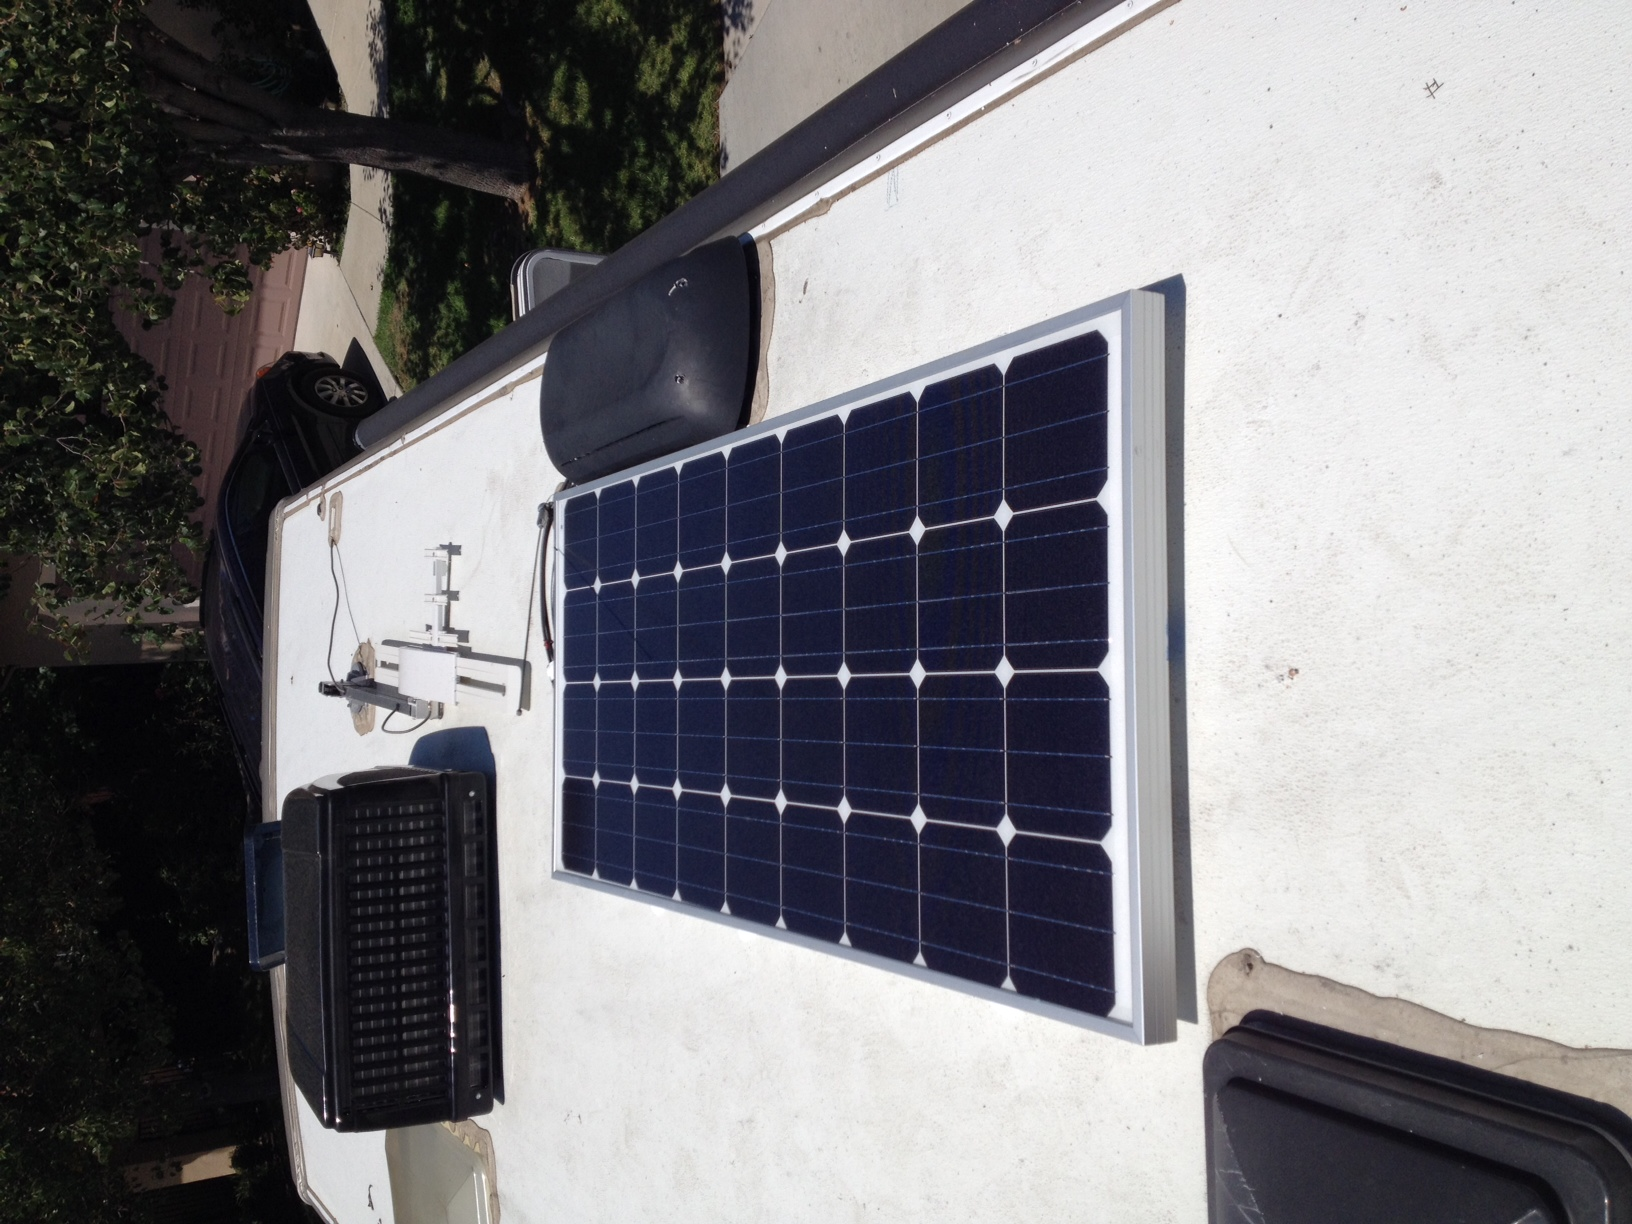 160 watt panel mounted on the roof.